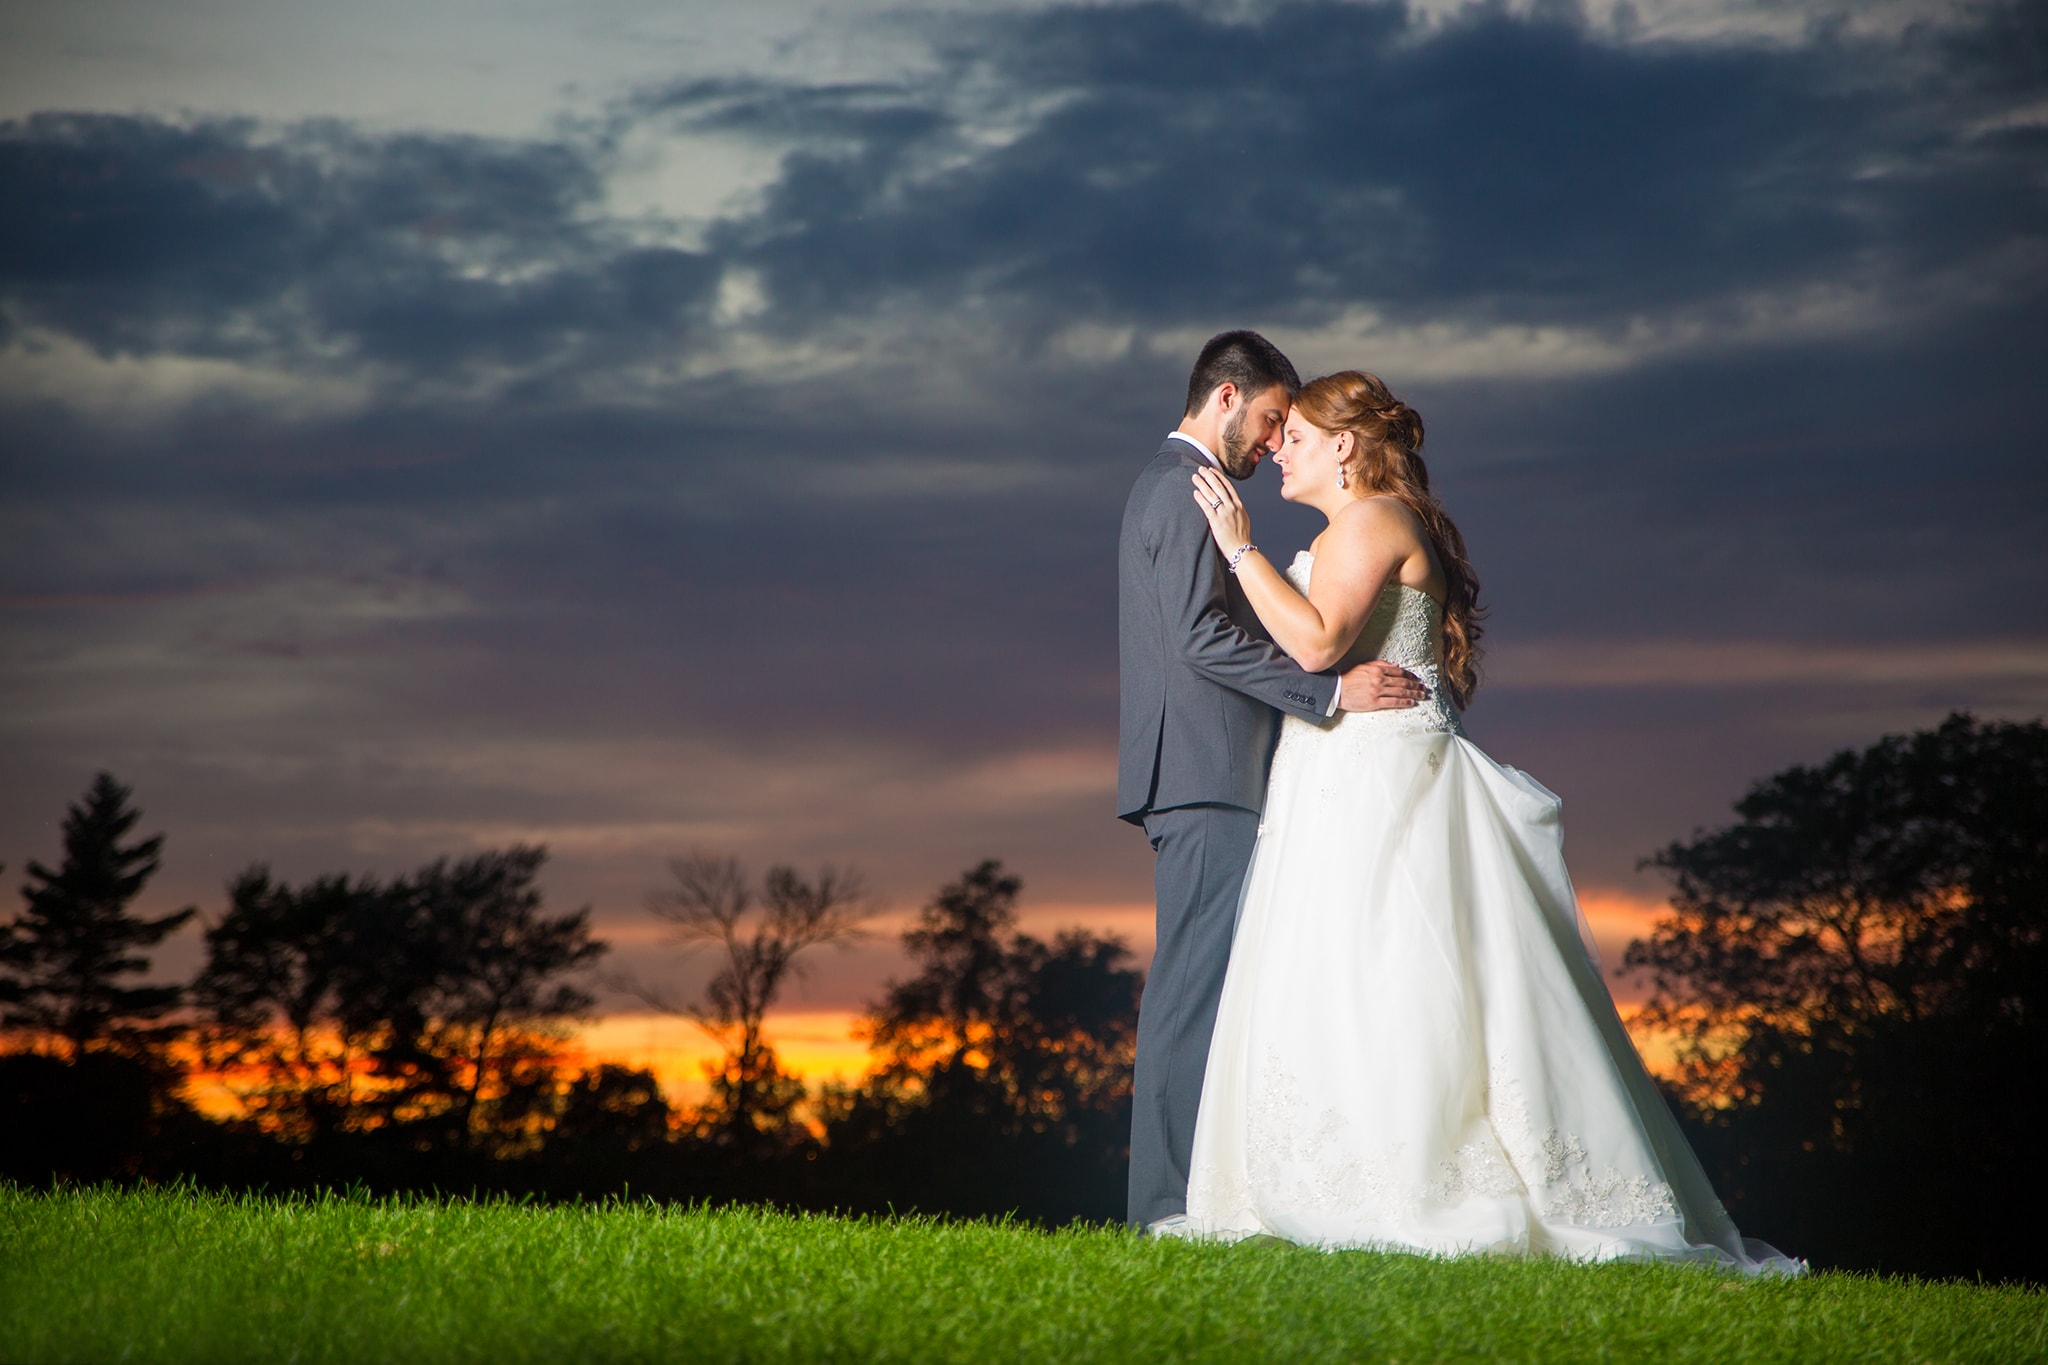 2016-august-27-fuss-wedding-sunset-image-for-website